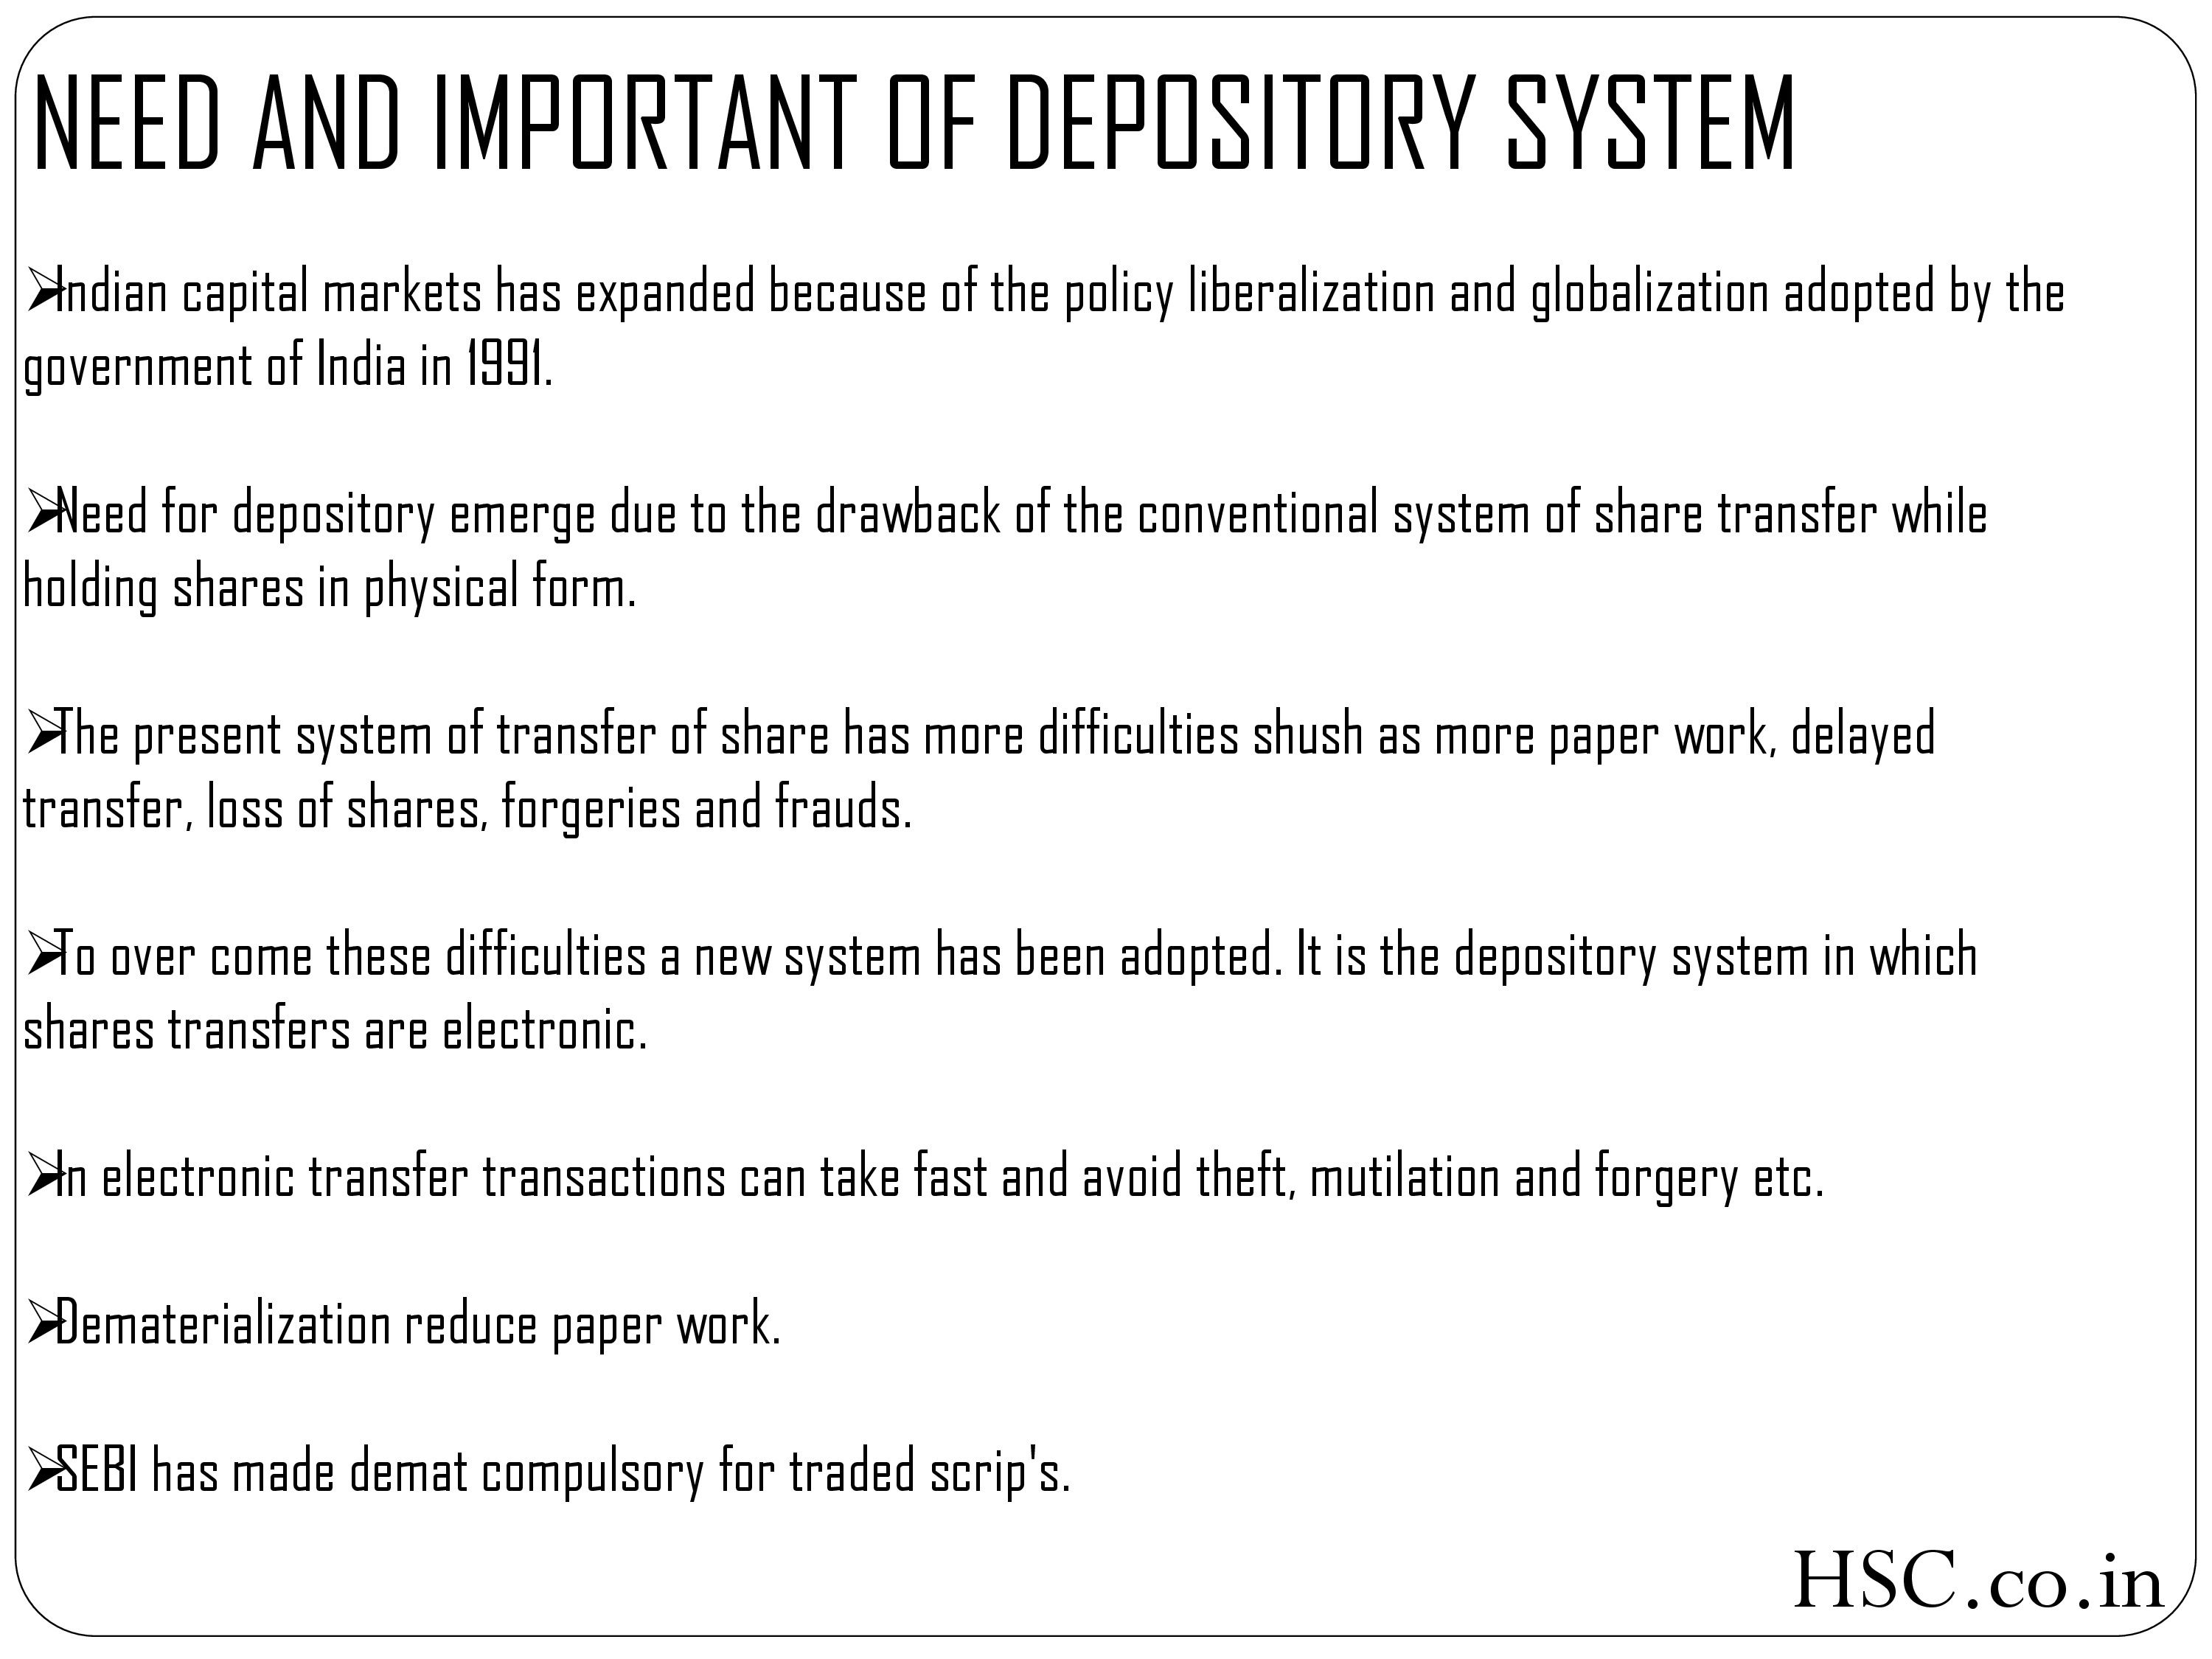 DEPOSITORY AND DEMATERIALIZATION-2